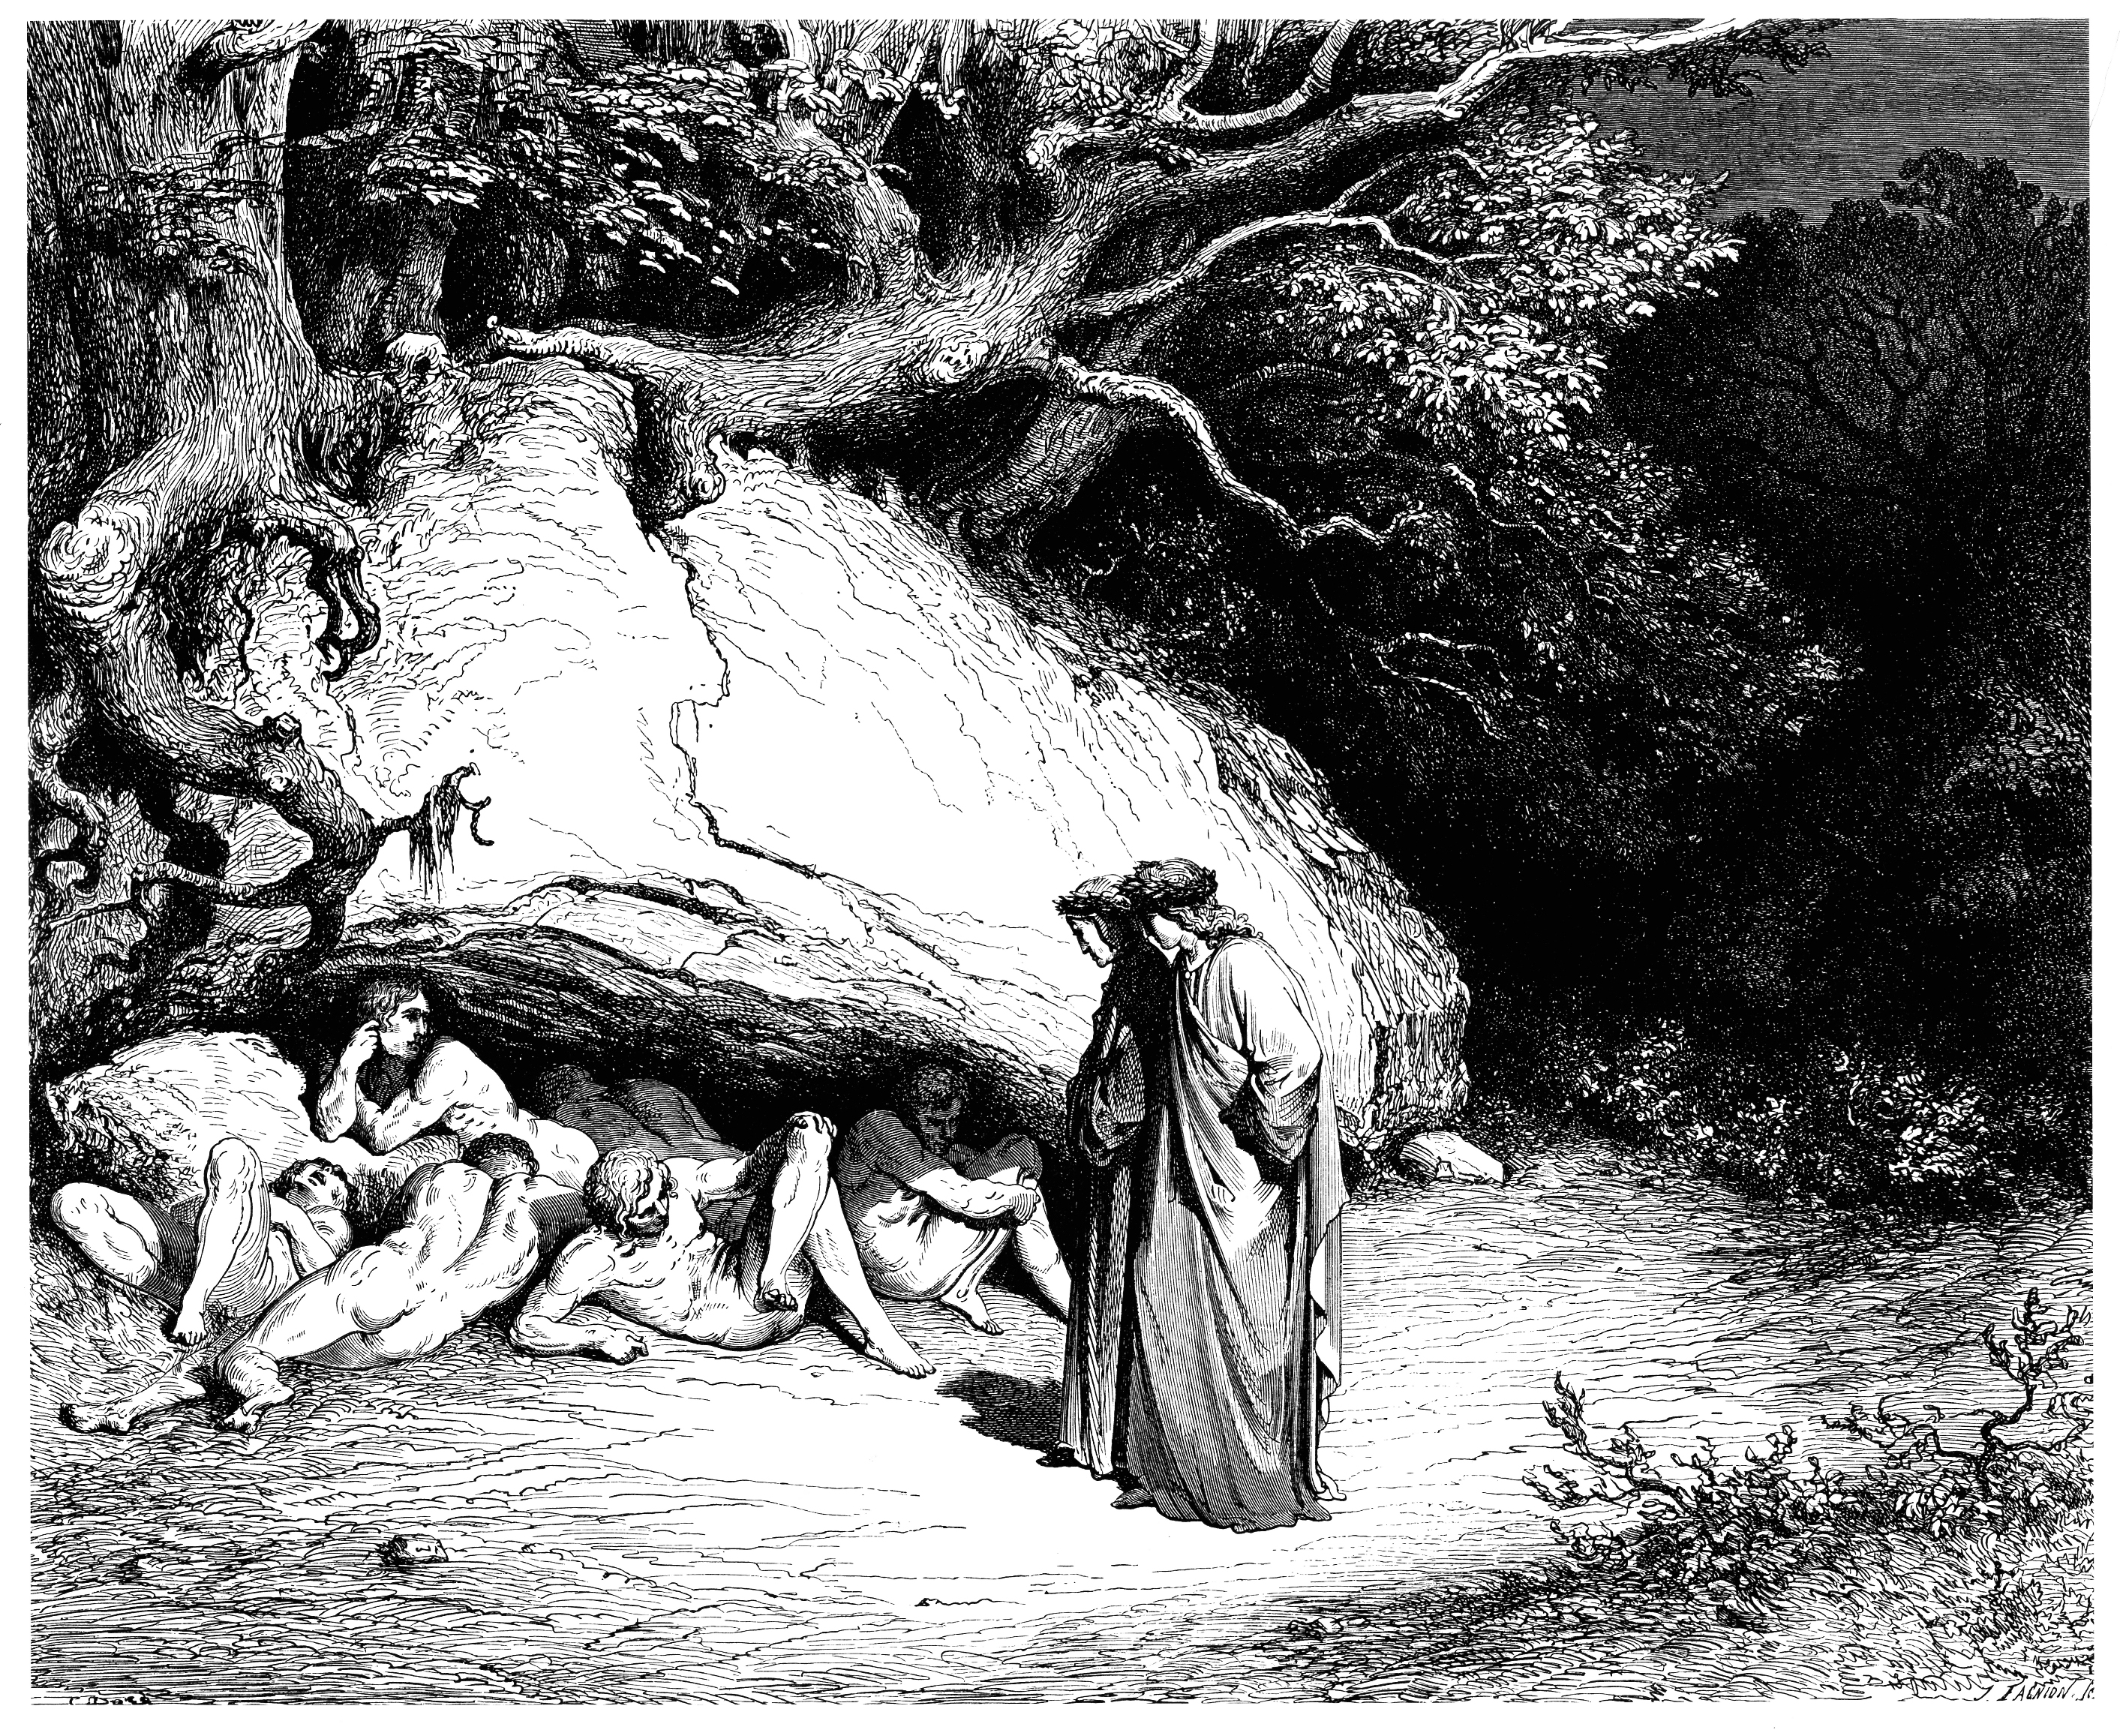 analysis of the concept of christianity in the inferno by dante alighieri Robert royal's dante alighieri: divine comedy  rodney j payton also aims for accessibility in a modern reader's guide to dante's inferno  christianity today strengthens the church by richly .